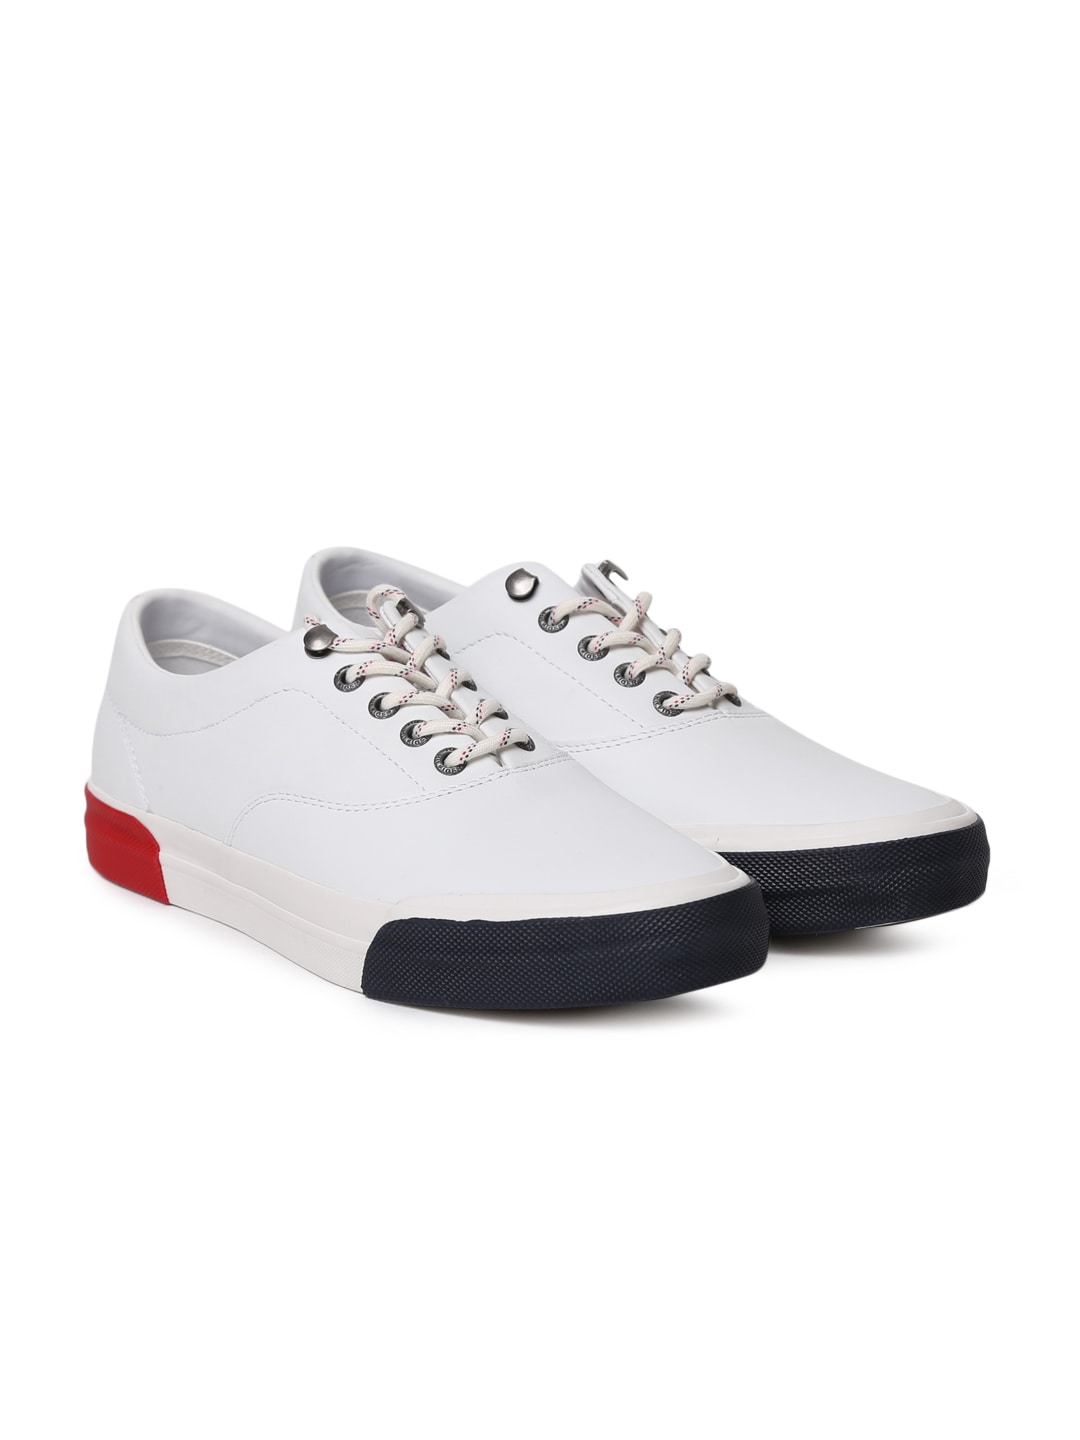 e424680f57b9 Compact Tommy Hilfiger Casual Shoes - Buy Compact Tommy Hilfiger Casual  Shoes online in India